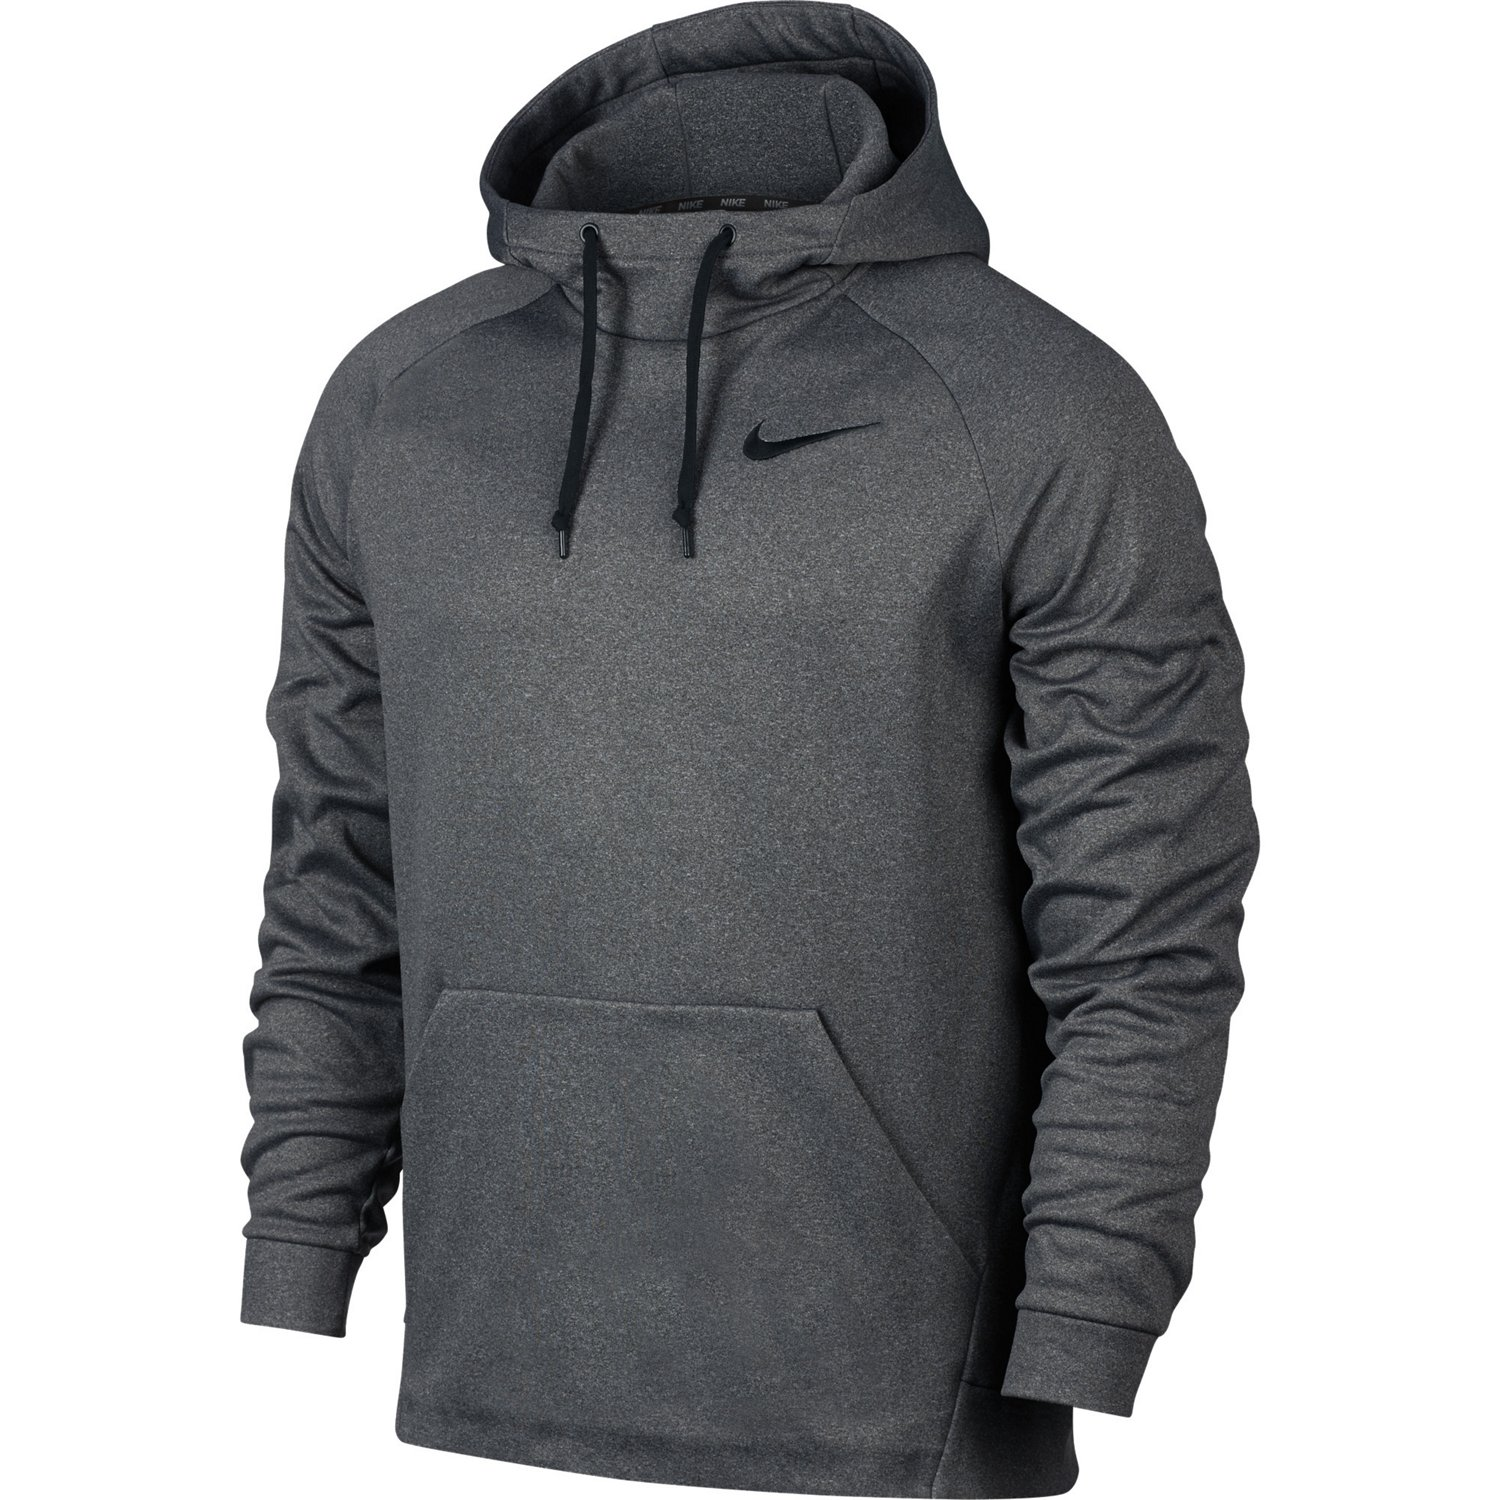 c723b8901db4 Display product reviews for Nike Men s Therma Training Hoodie